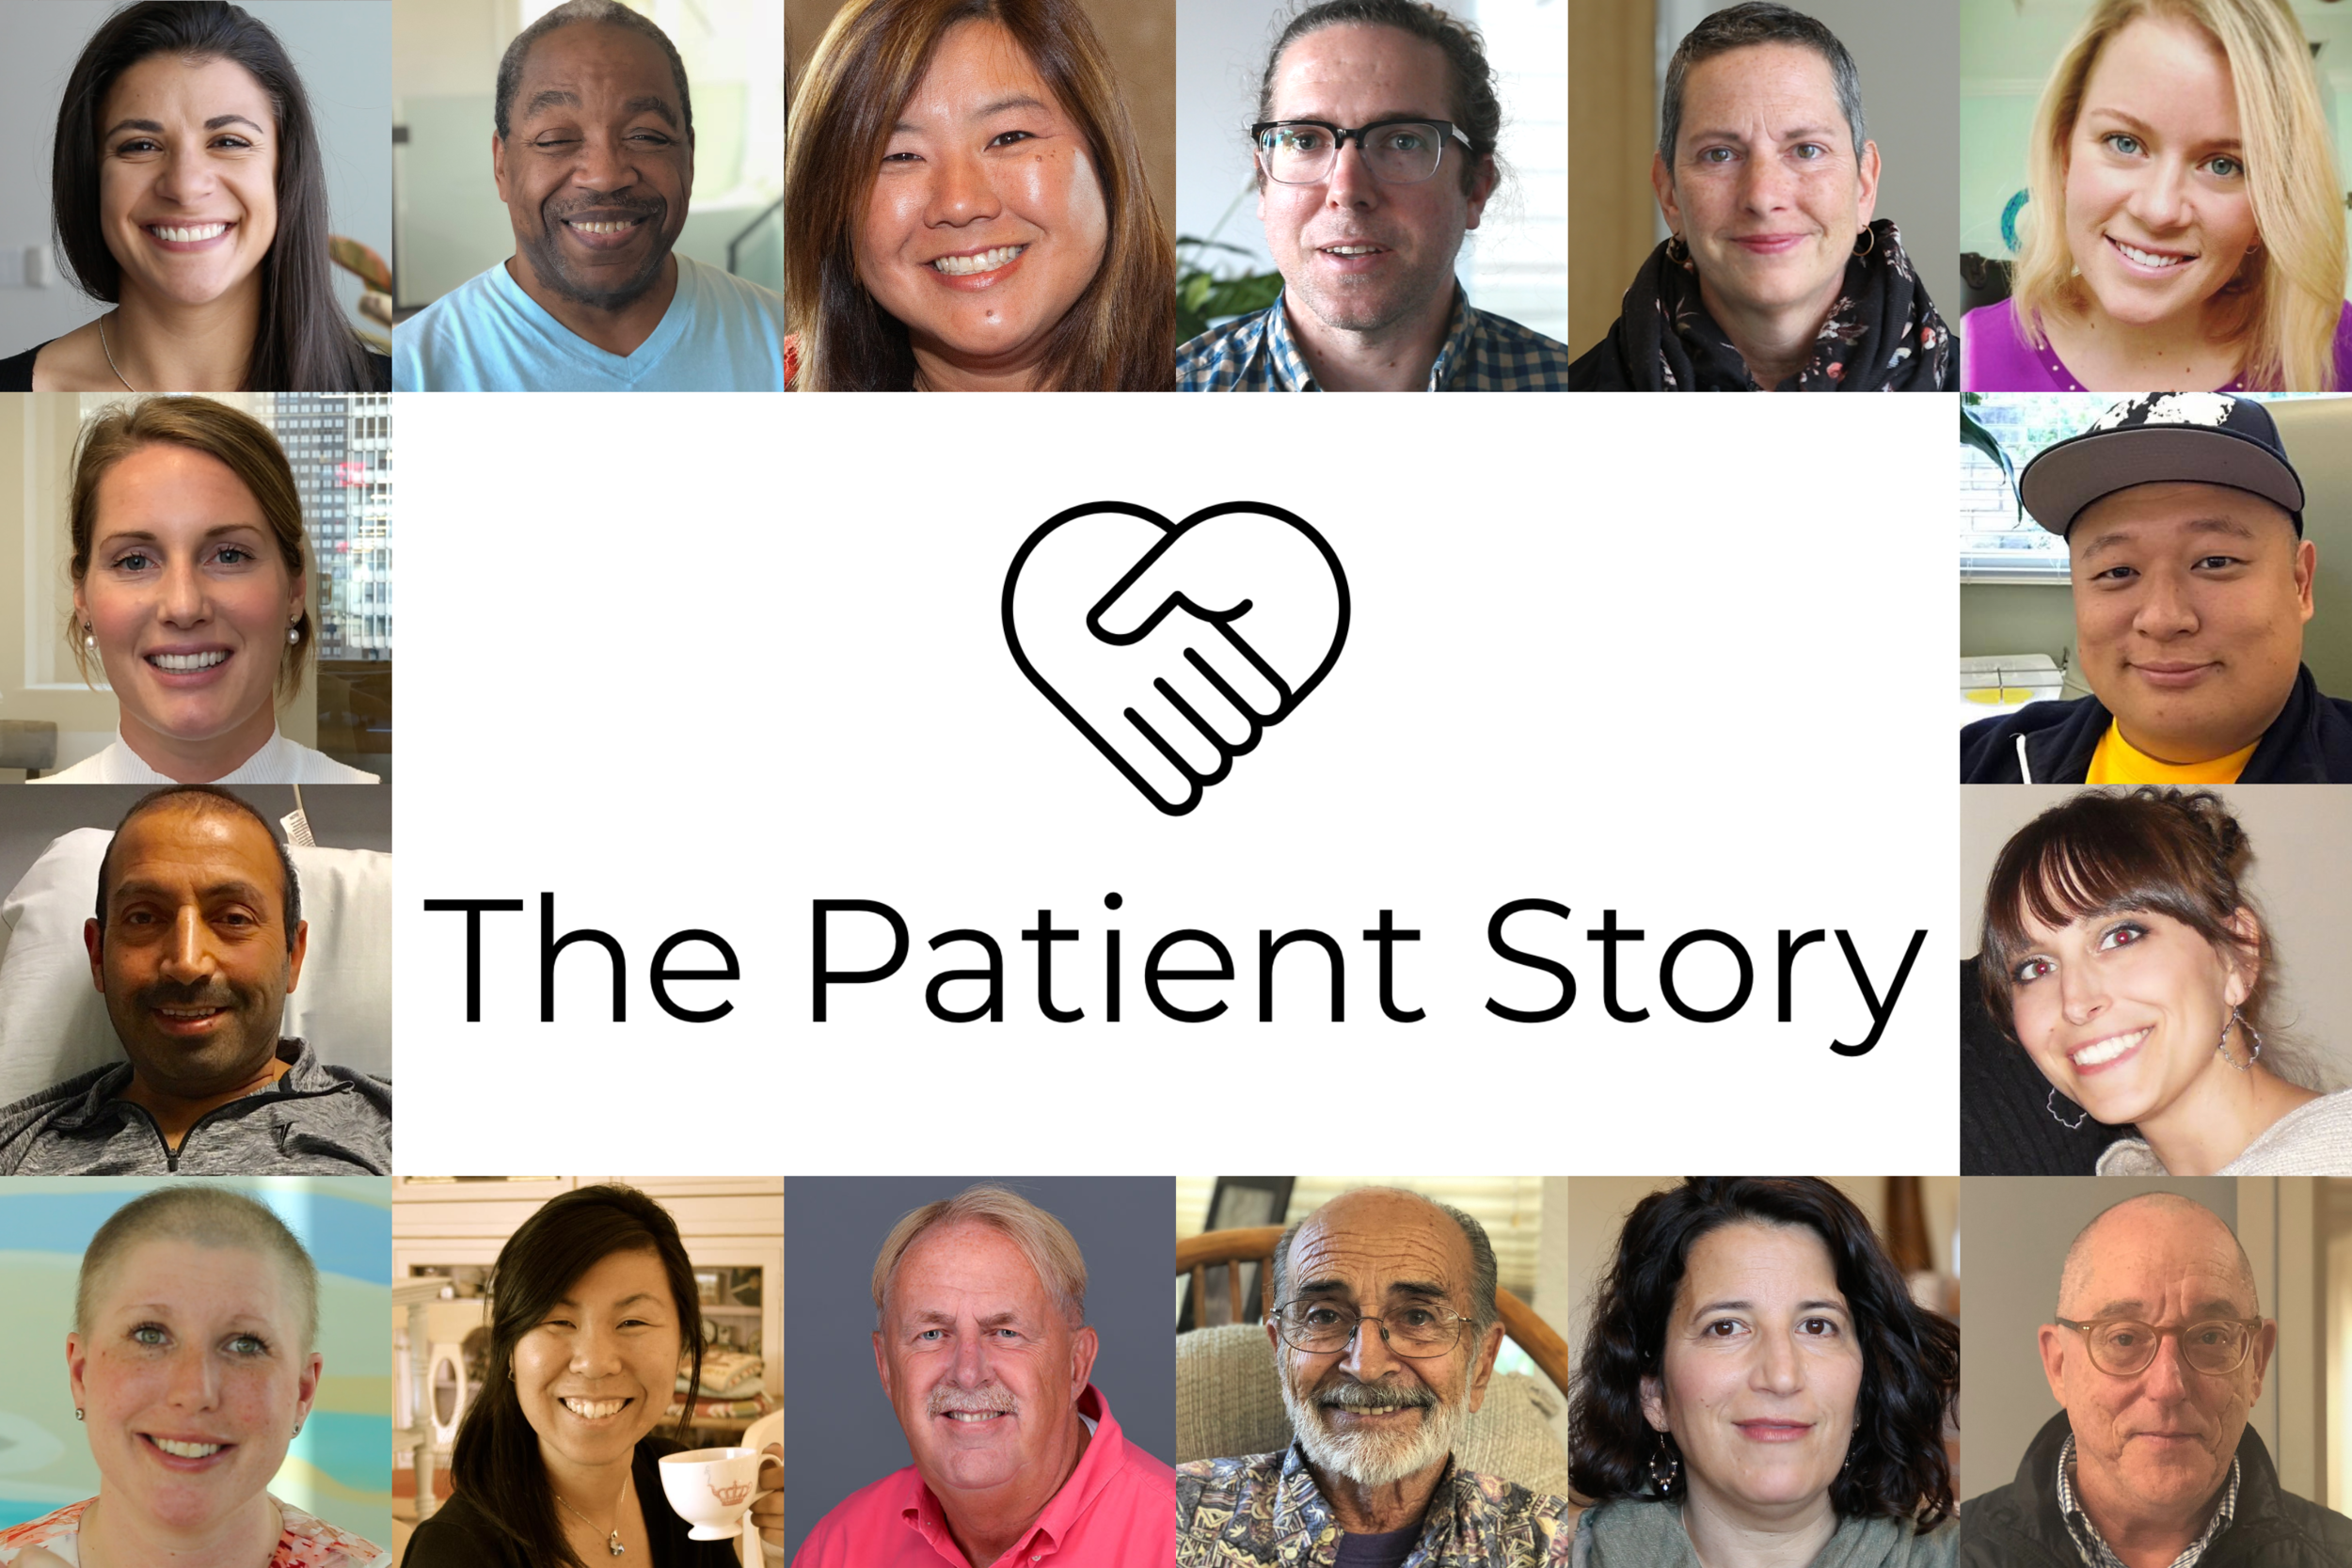 The Patient Story - Formerly OneDavid, we do in-depth interviews with recent cancer survivors and turn them into FAQs and timelines for patients and caregivers dealing with a new diagnosis.